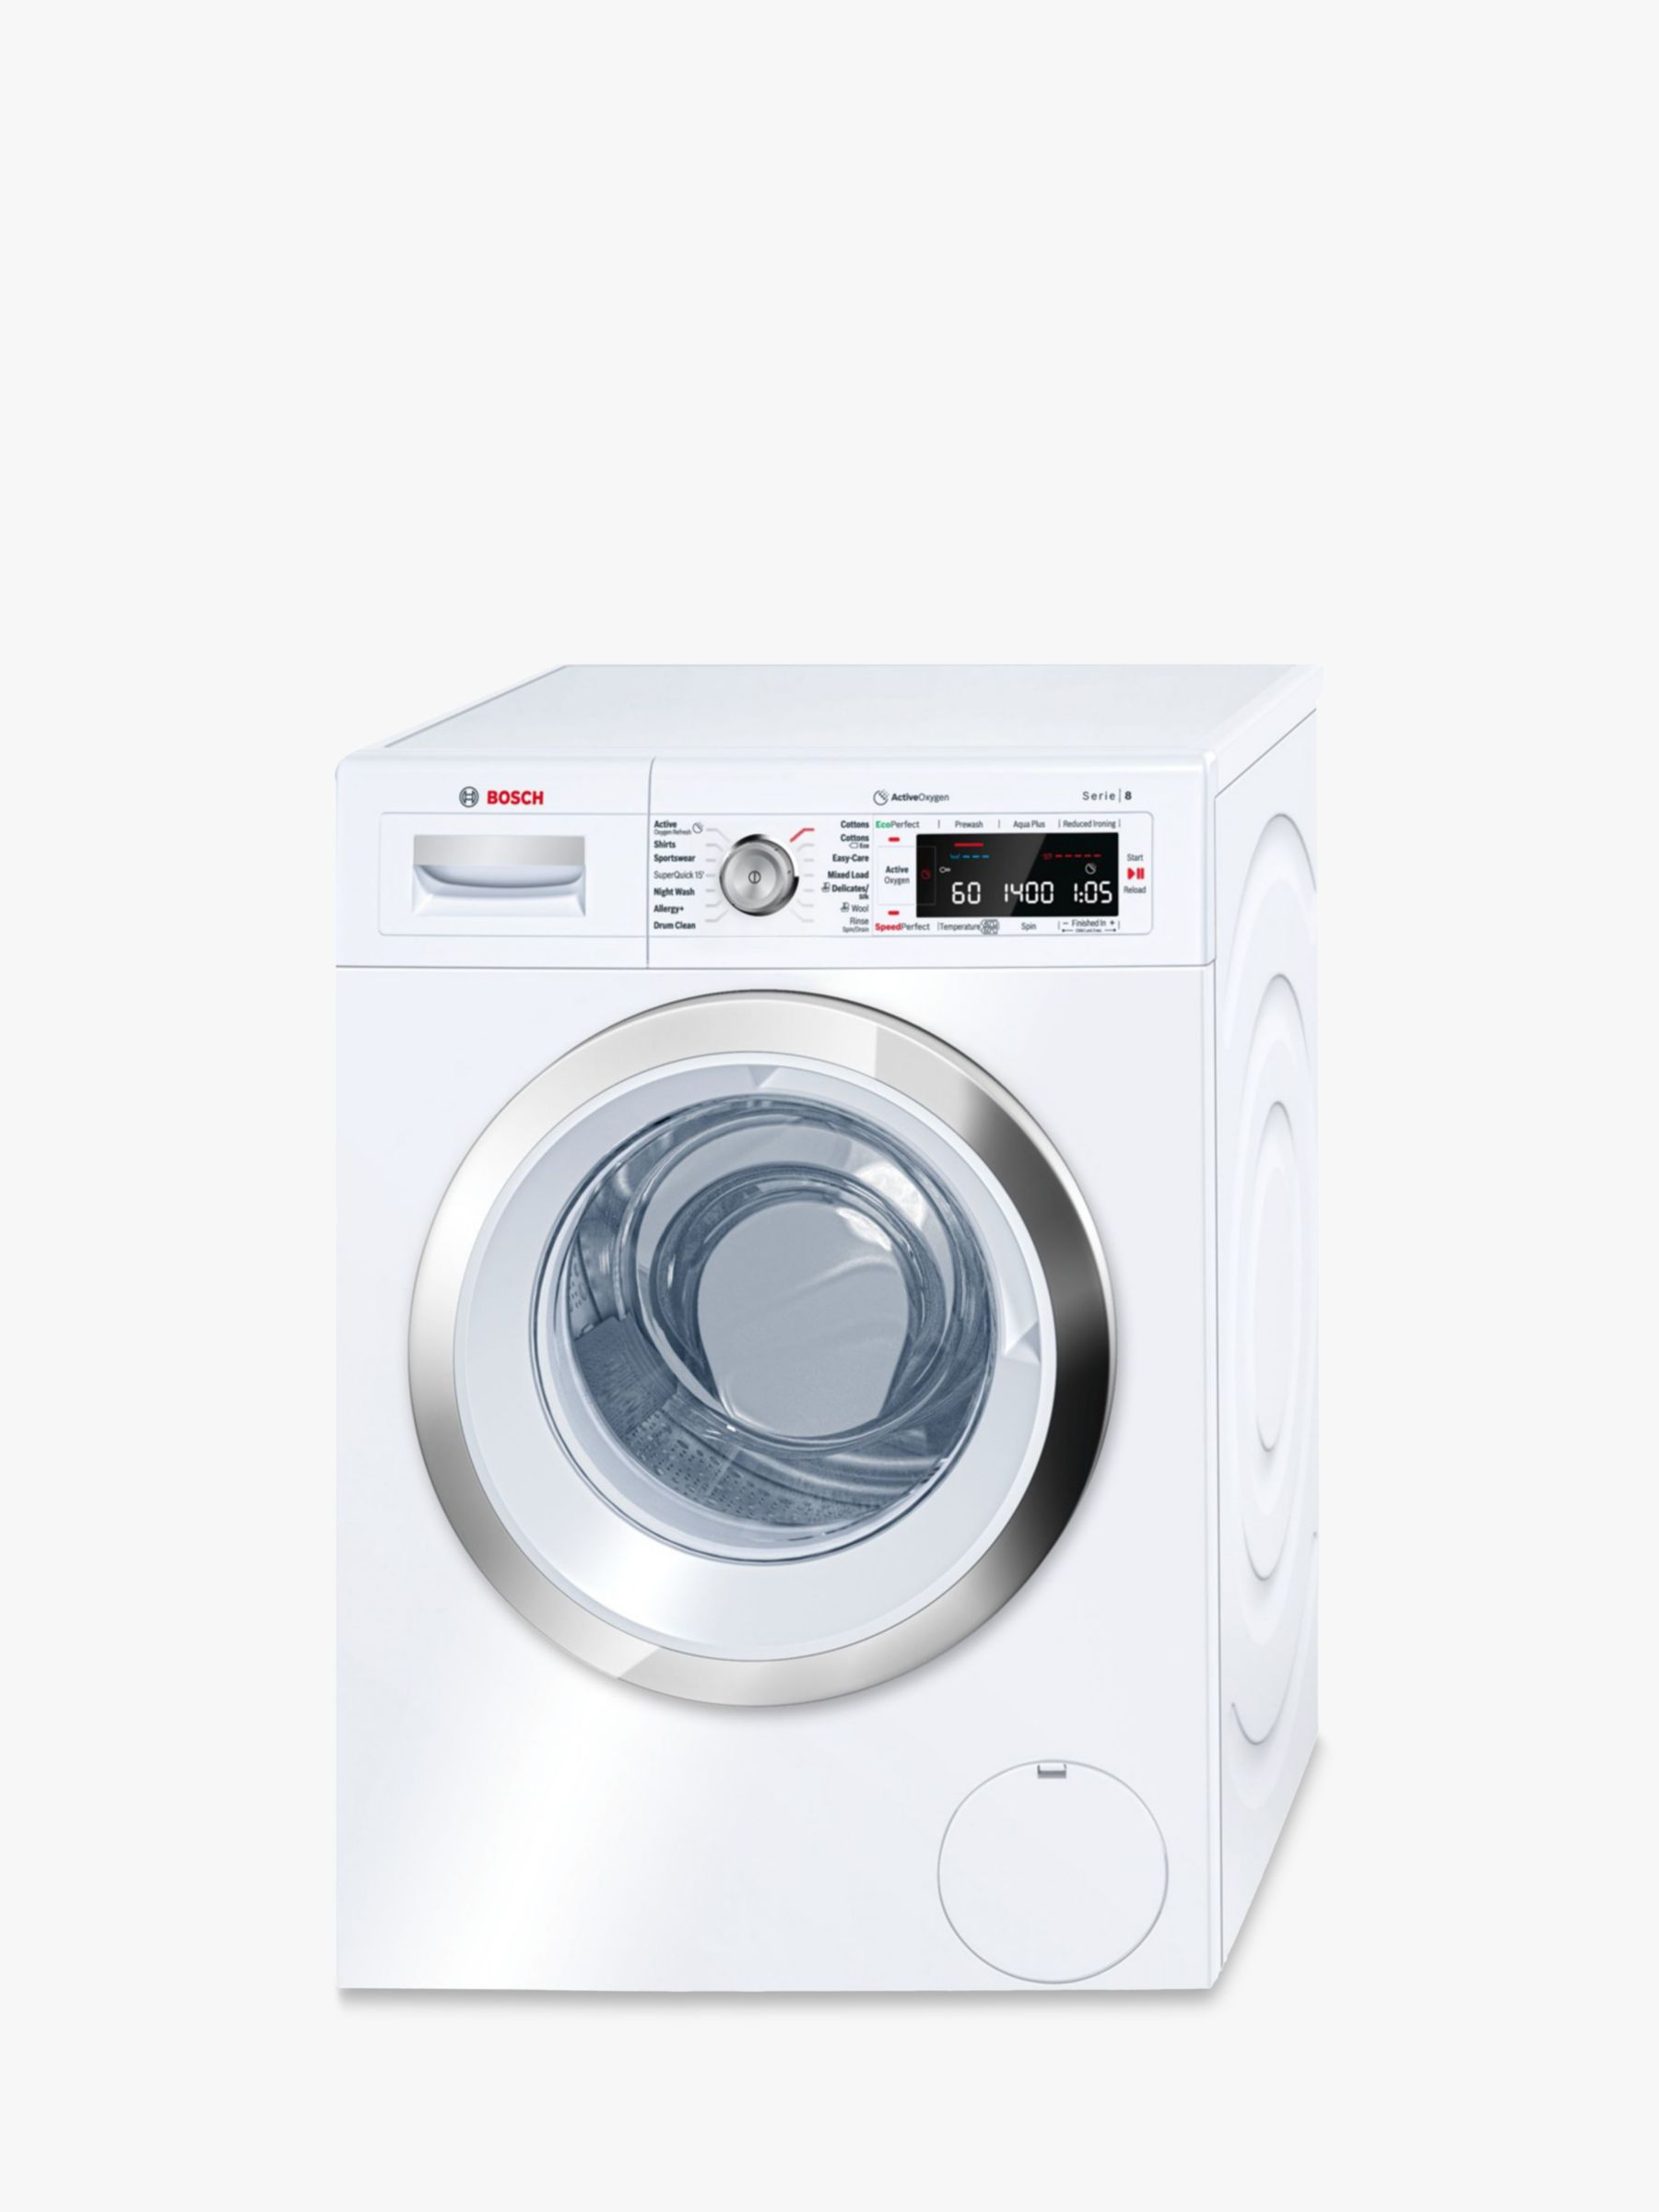 Bosch Bosch WAW28750GB Freestanding Washing Machine, 9kg Load, A+++ Energy Rating, 1400rpm Spin, White